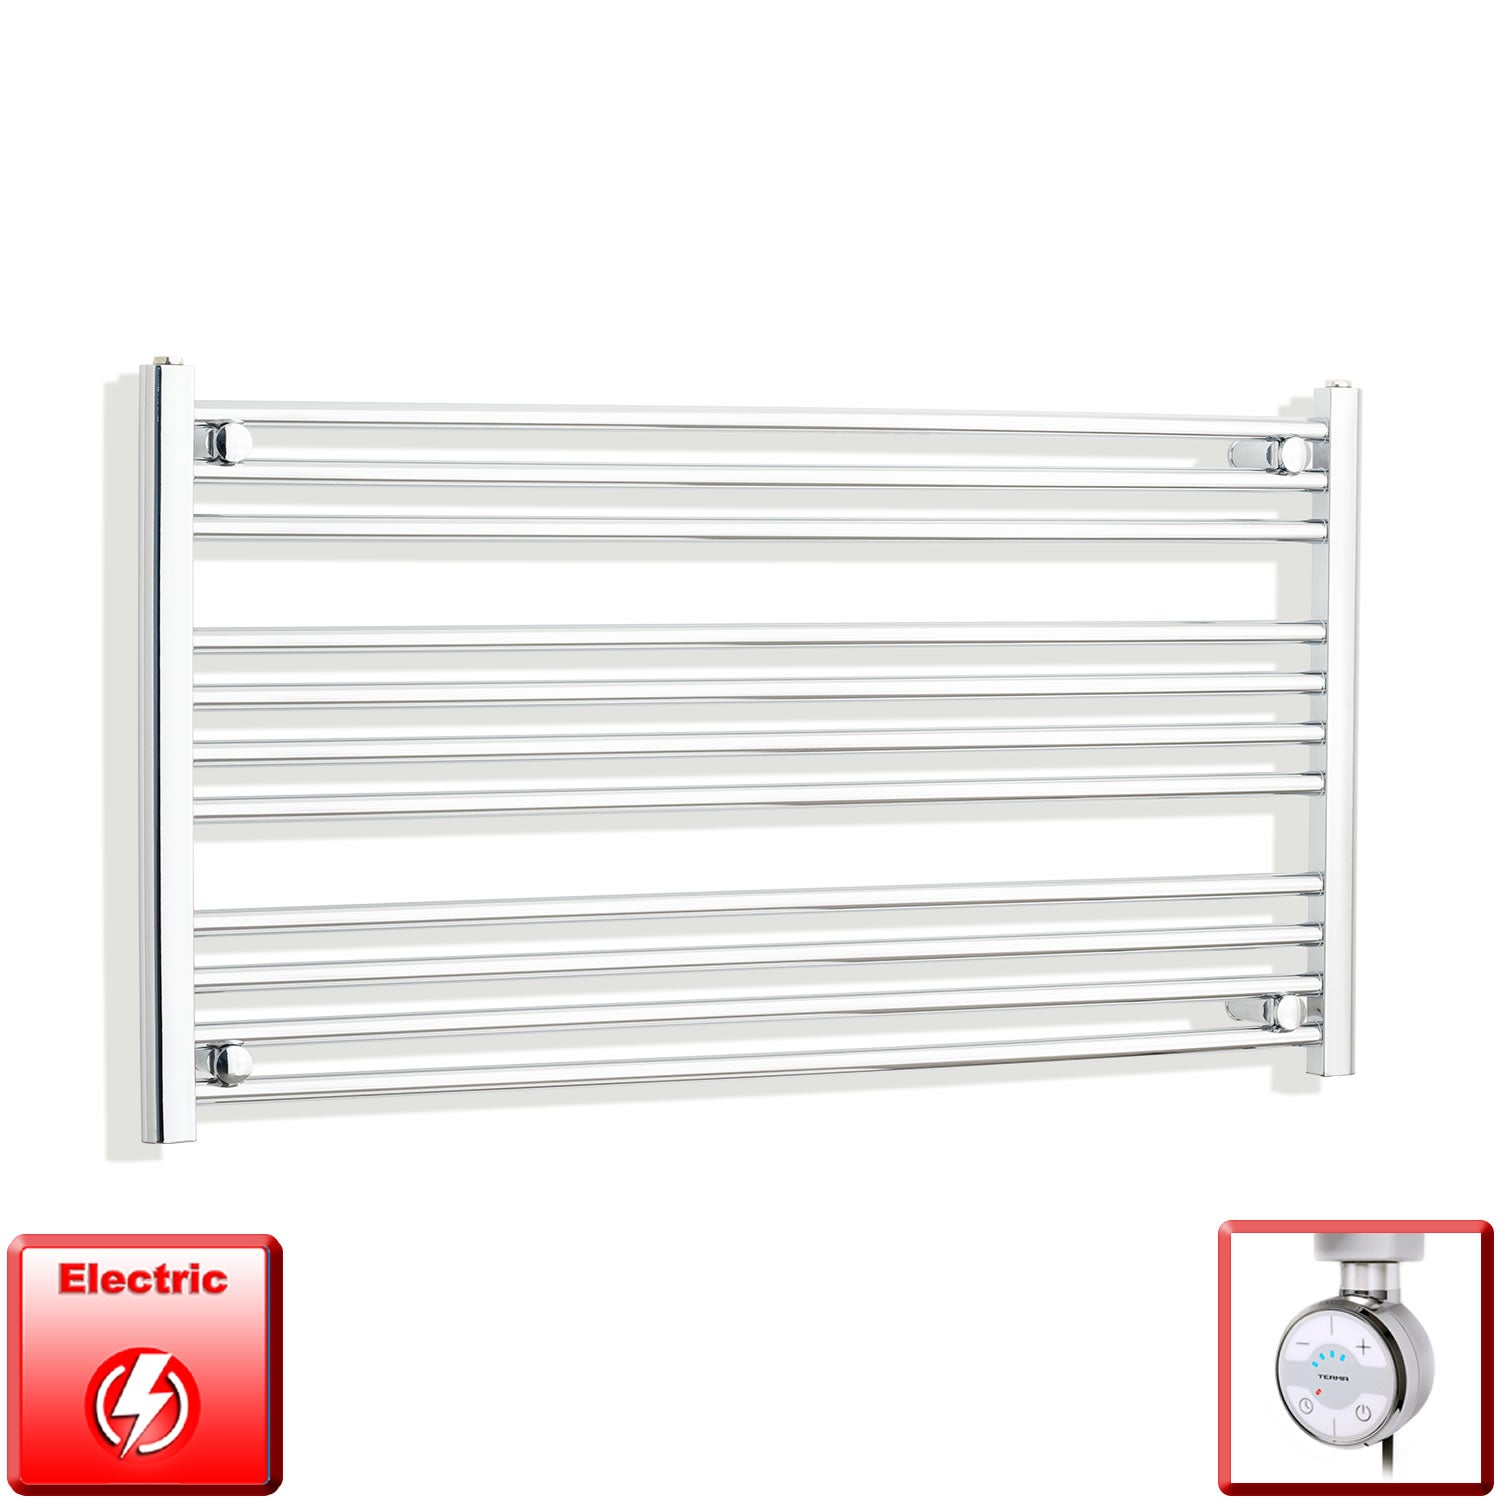 950mm Wide 600mm High Pre-Filled Chrome Electric Towel Rail Radiator With Thermostatic MOA Element